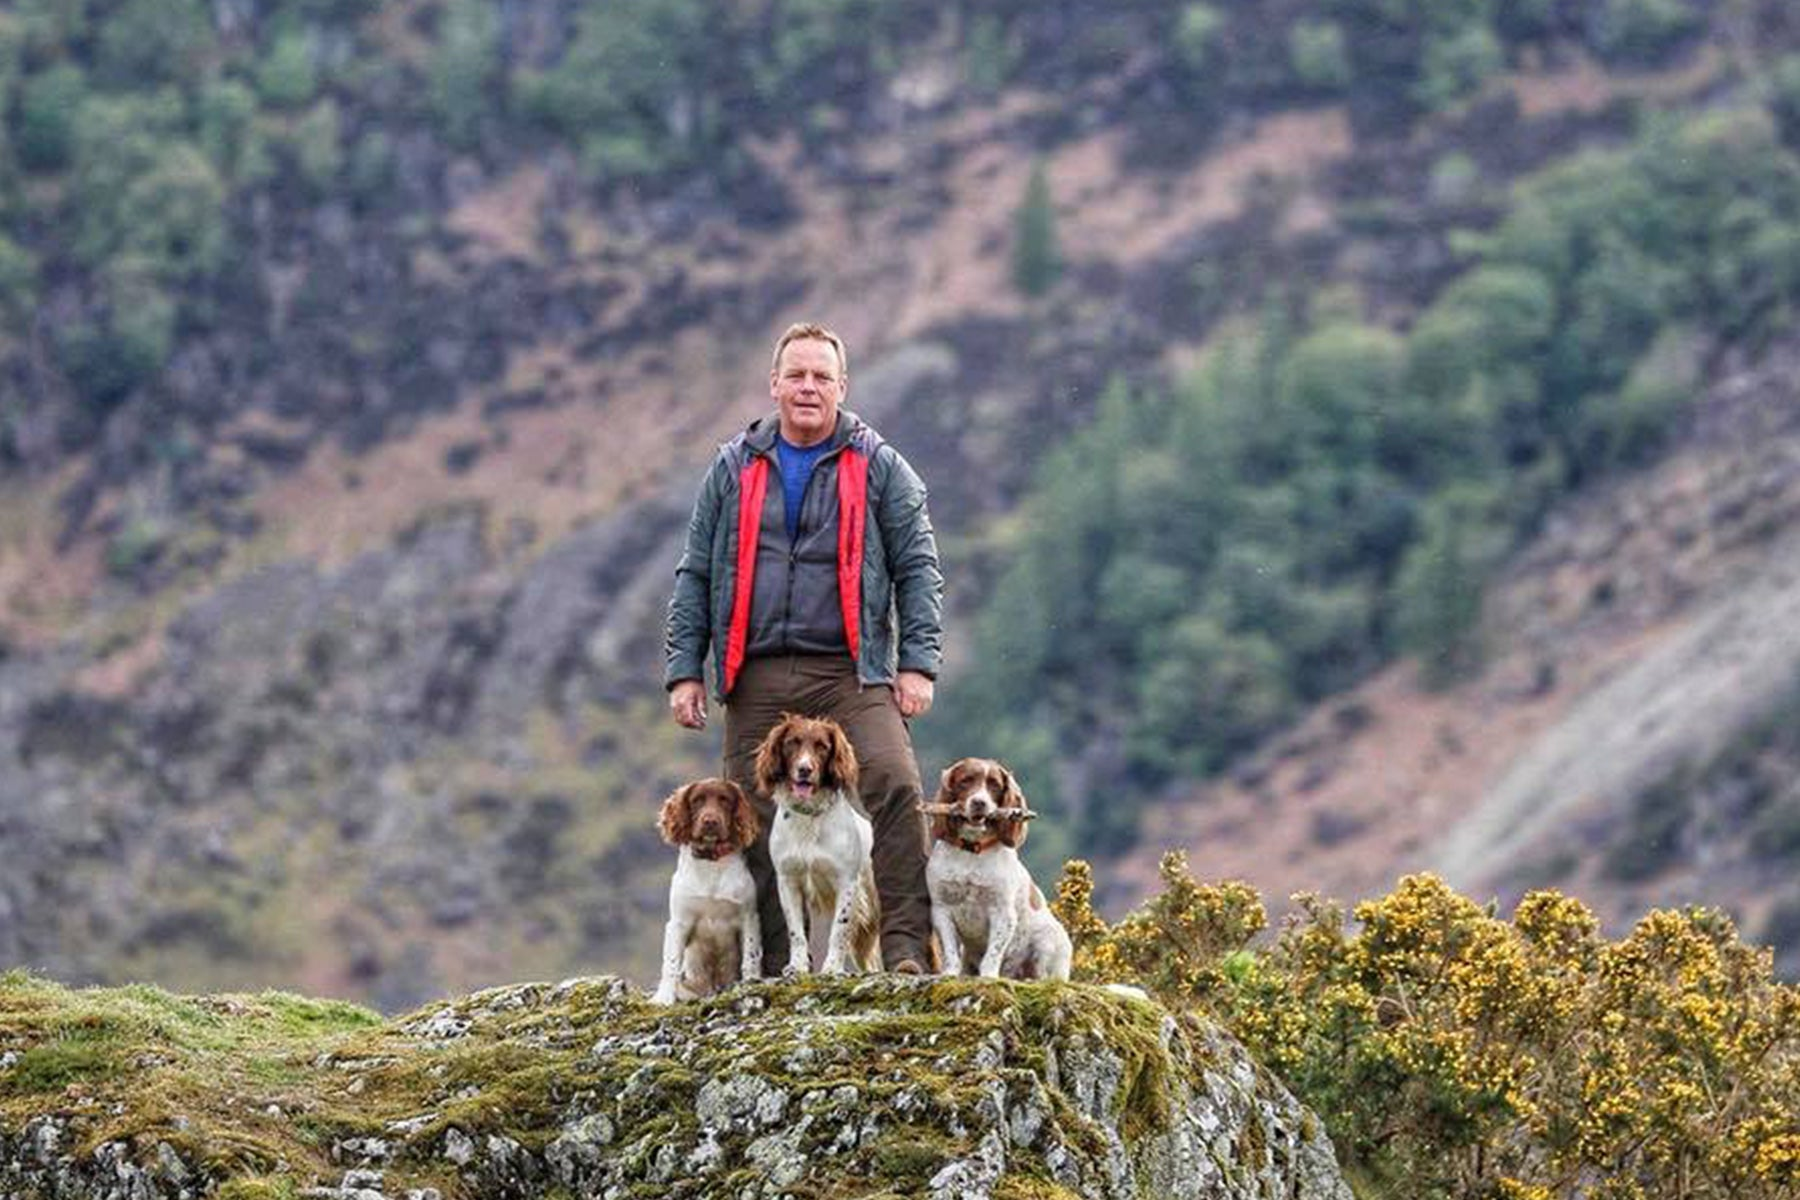 Kerry and his three dogs.